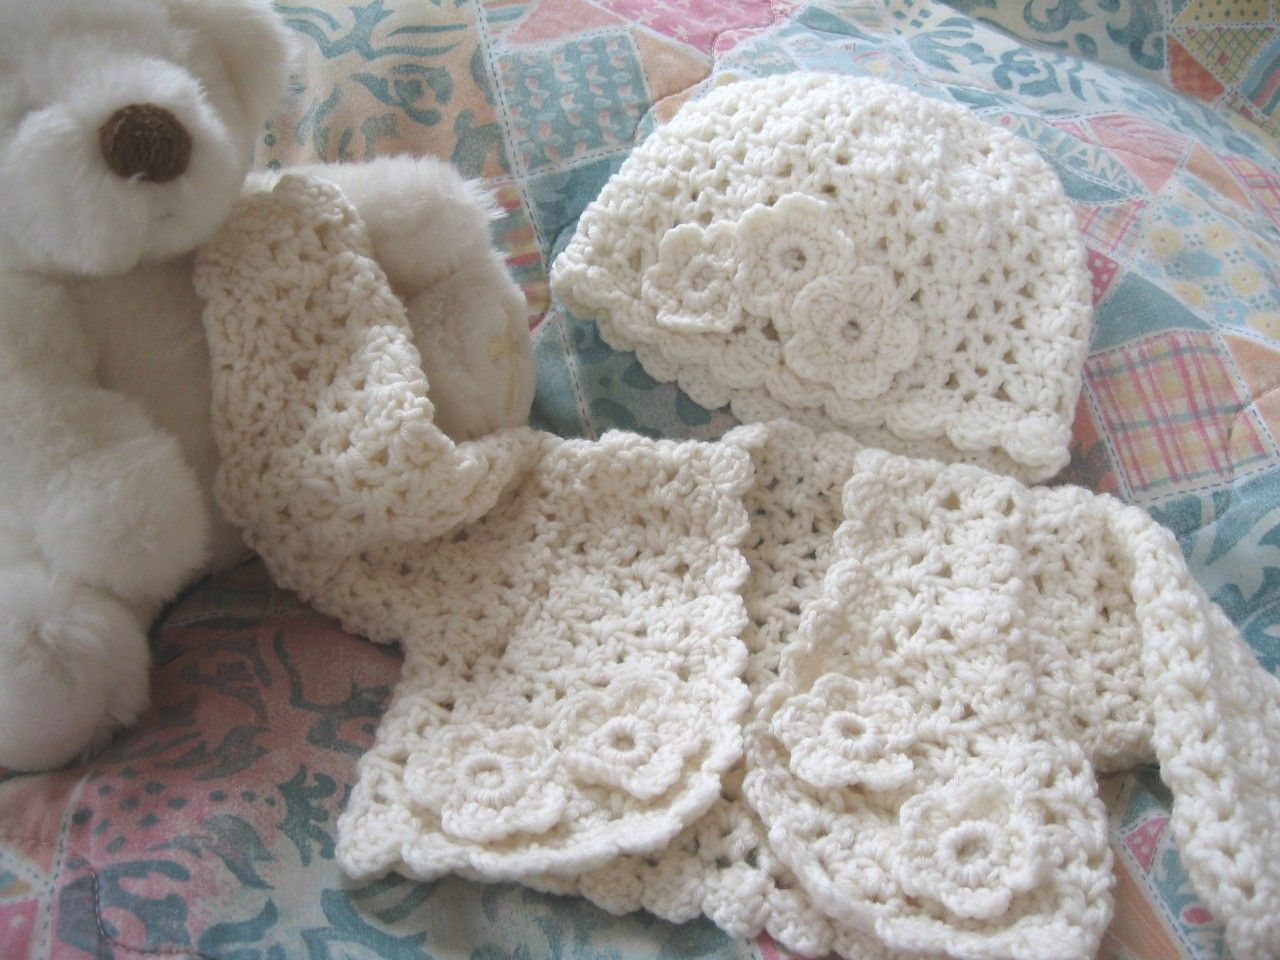 38e01915493 Crochet Baby Sweater   Hat Set - 100% Pure Merino Wool - FREE SHIPPING -   CUSTOM MADE TO ORDER  Perfect for Weddings